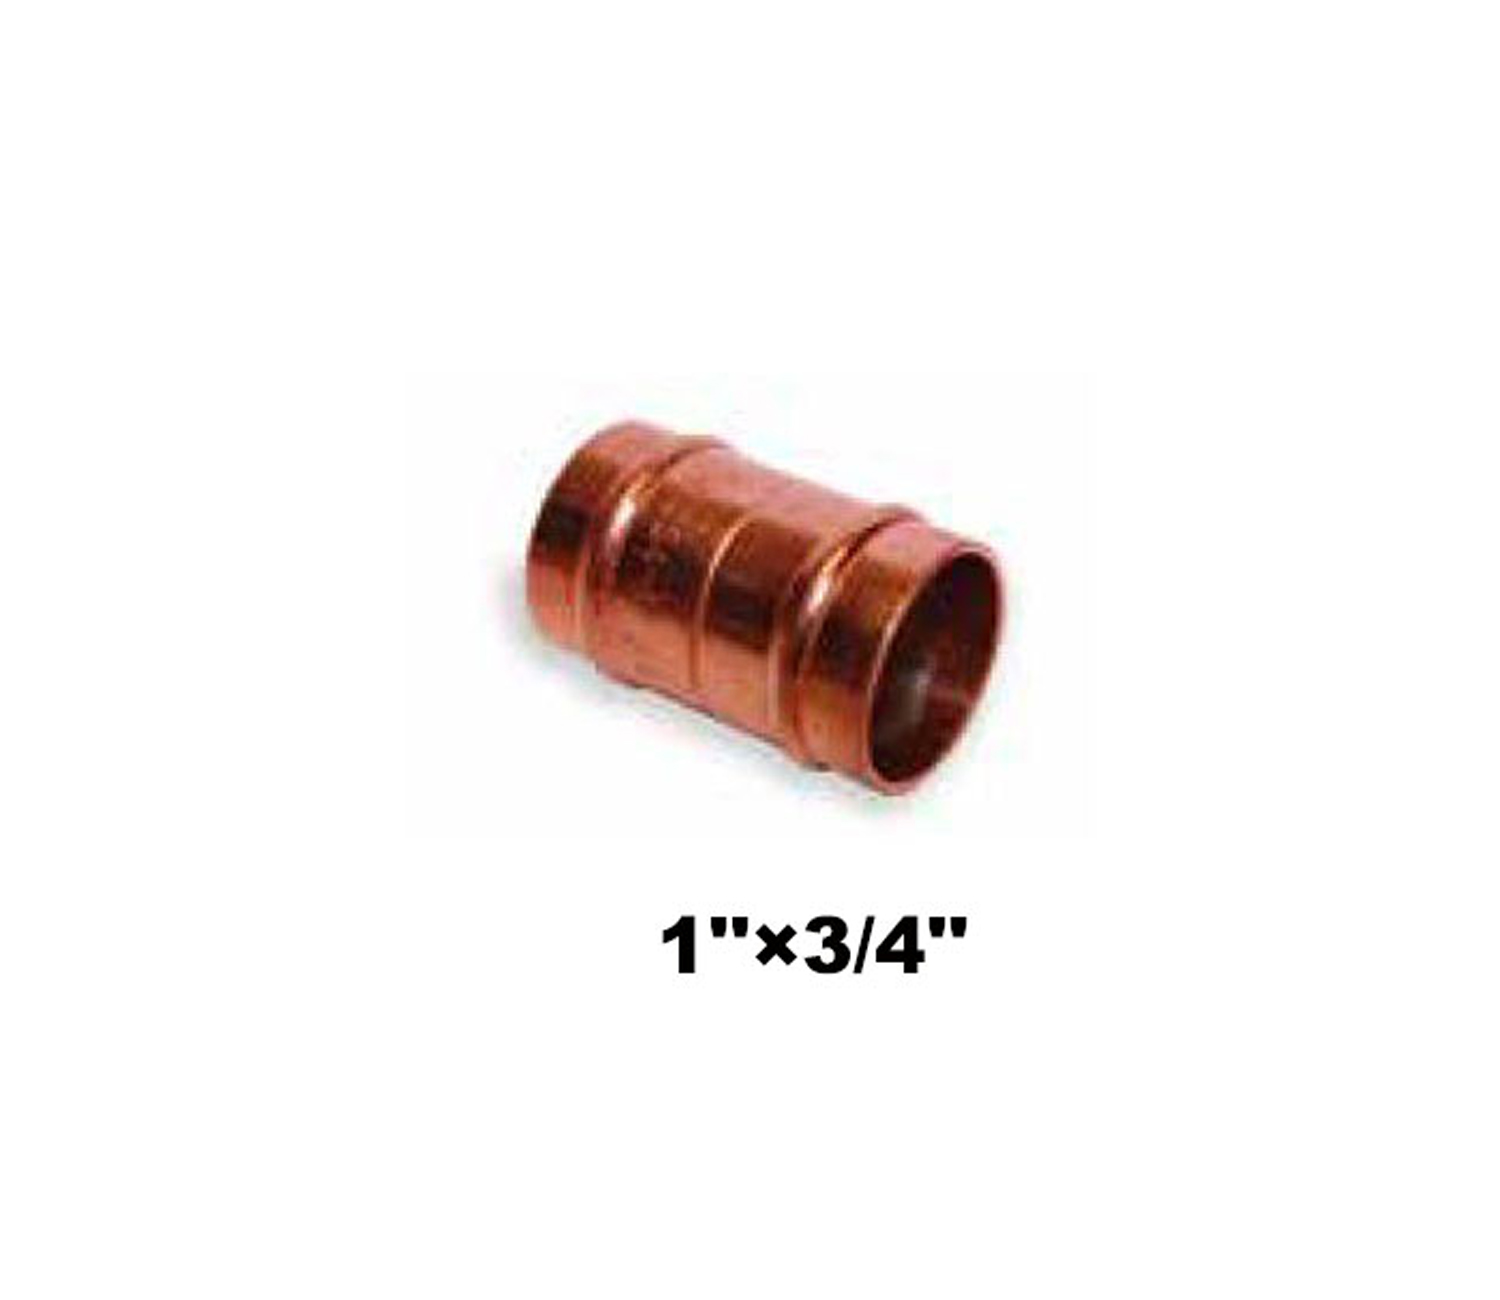 "Straight Compression Coupler C×C 1""×3/4"" (10032)"